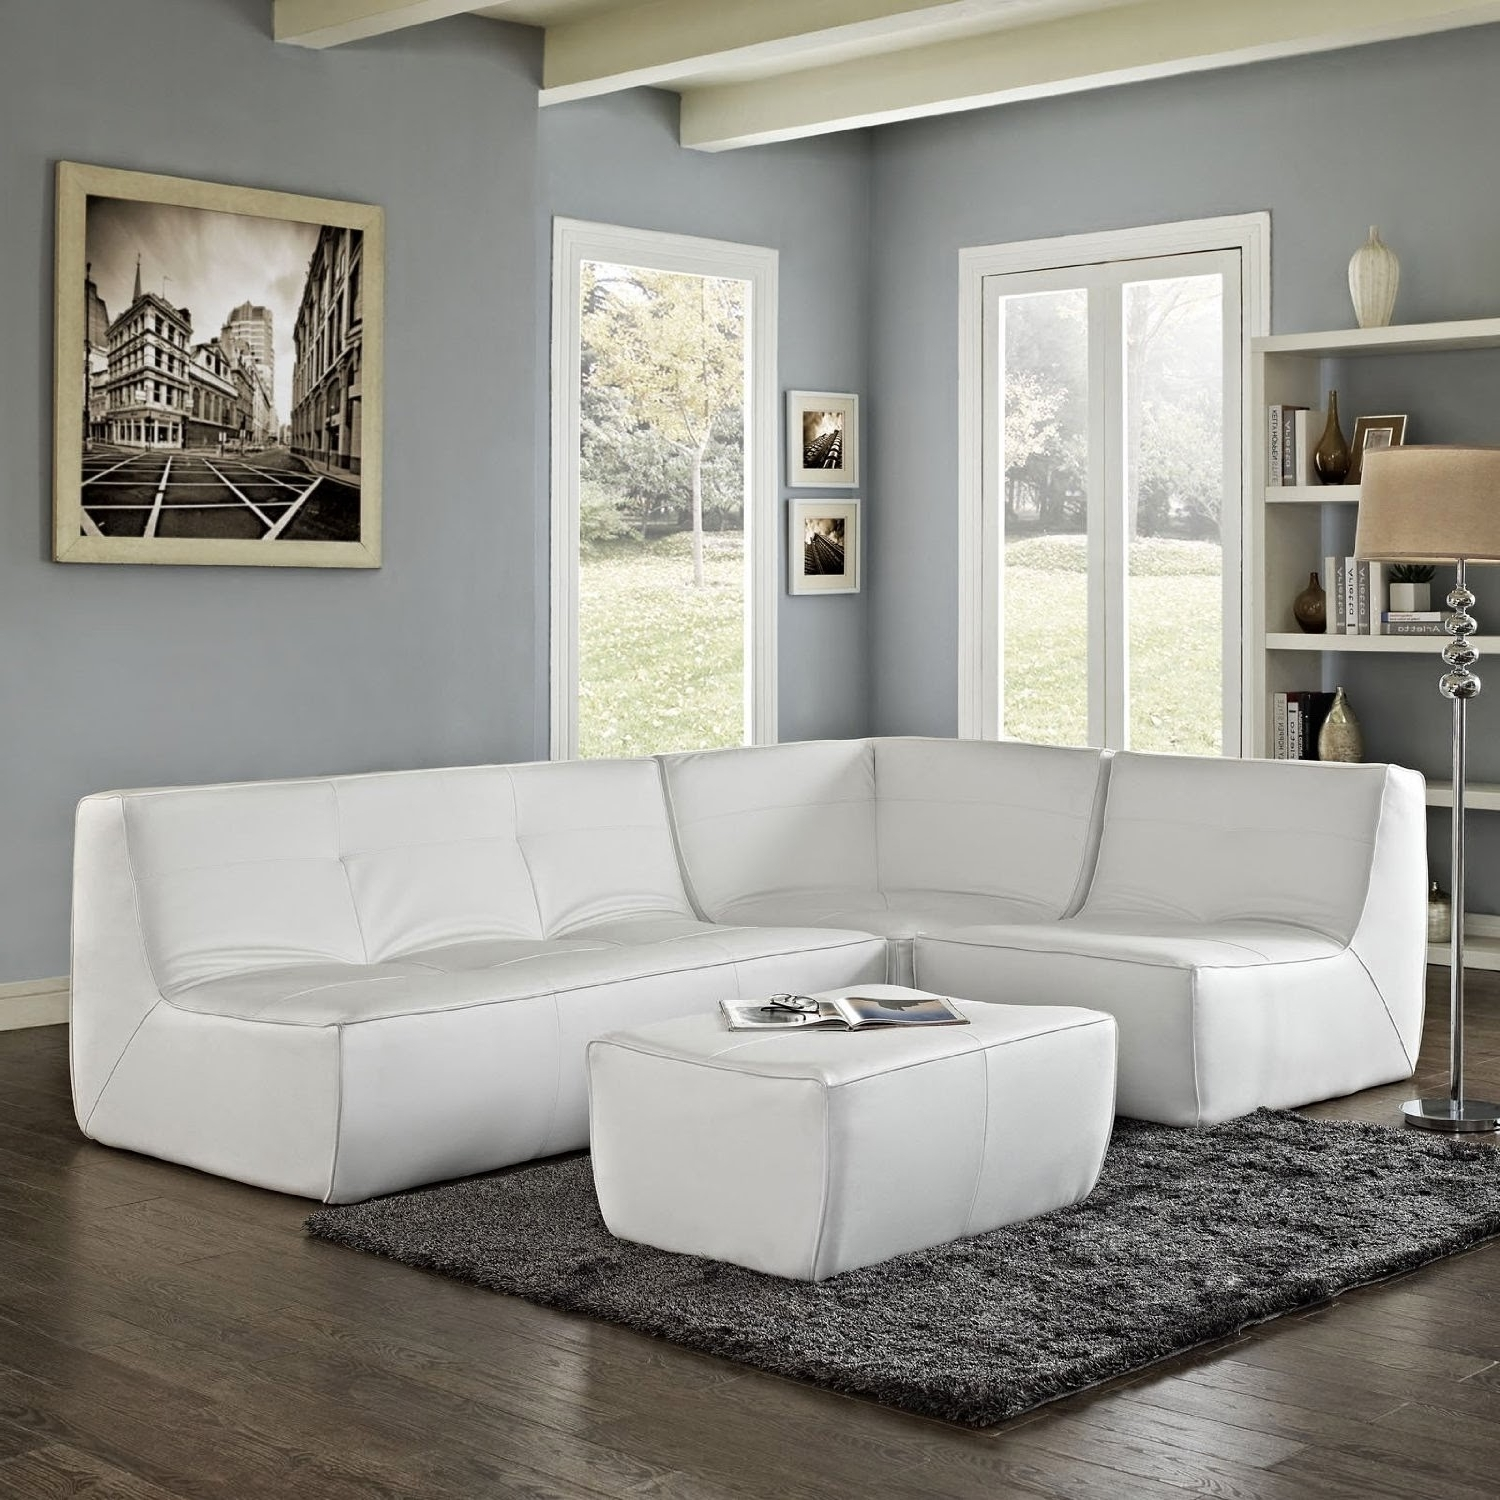 Most Current Sectional Modern Sofa Interior White Button Leather Furniture Pertaining To Vancouver Bc Canada Sectional Sofas (View 8 of 20)